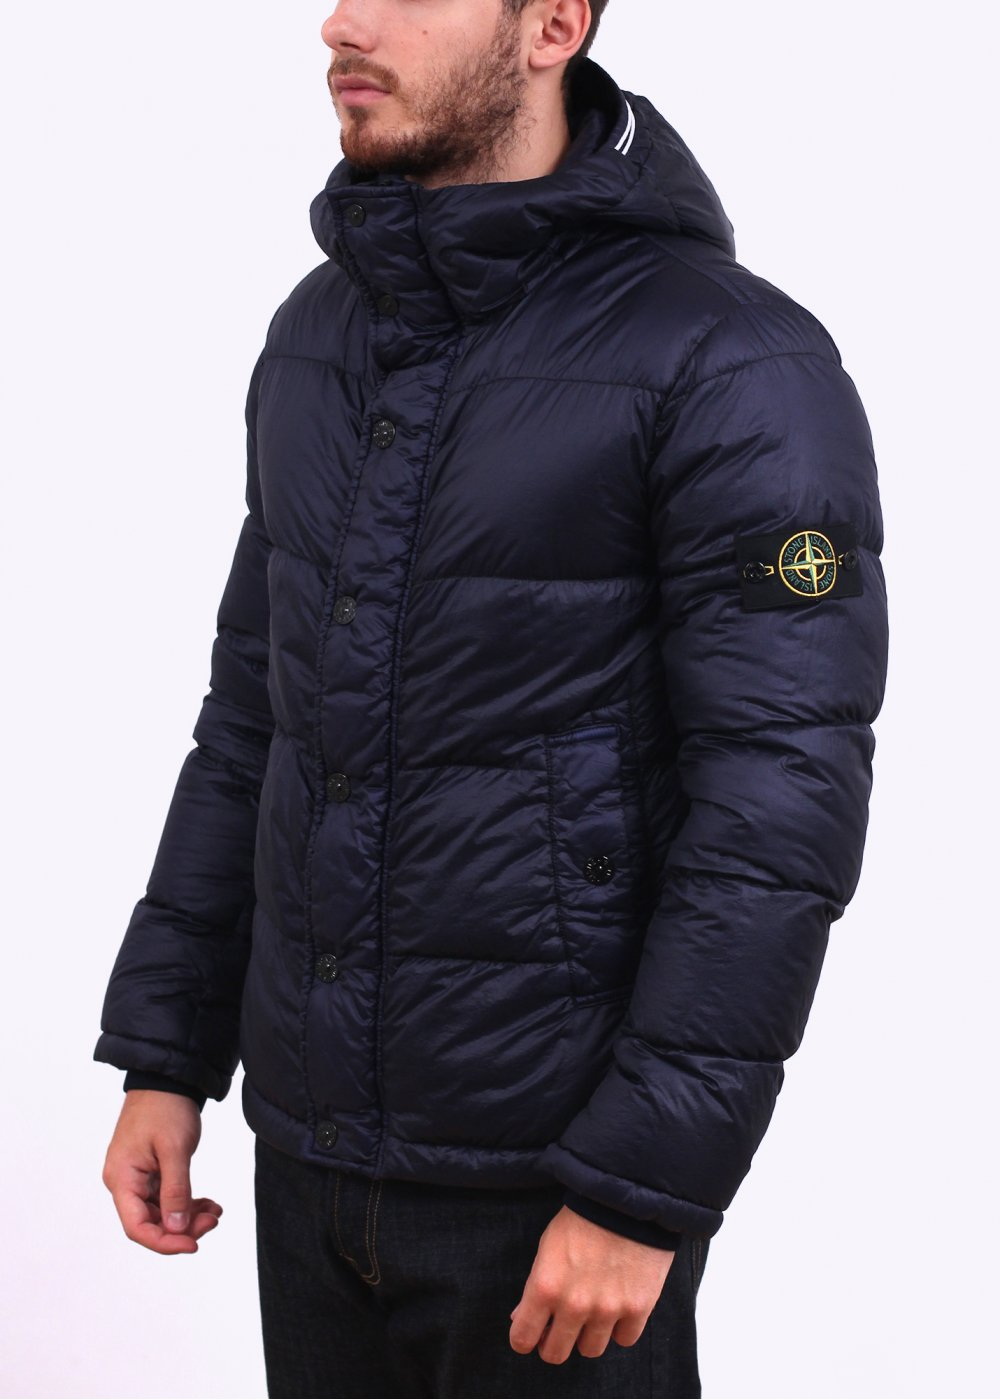 stone island packable down jacket garden house lazzerini. Black Bedroom Furniture Sets. Home Design Ideas